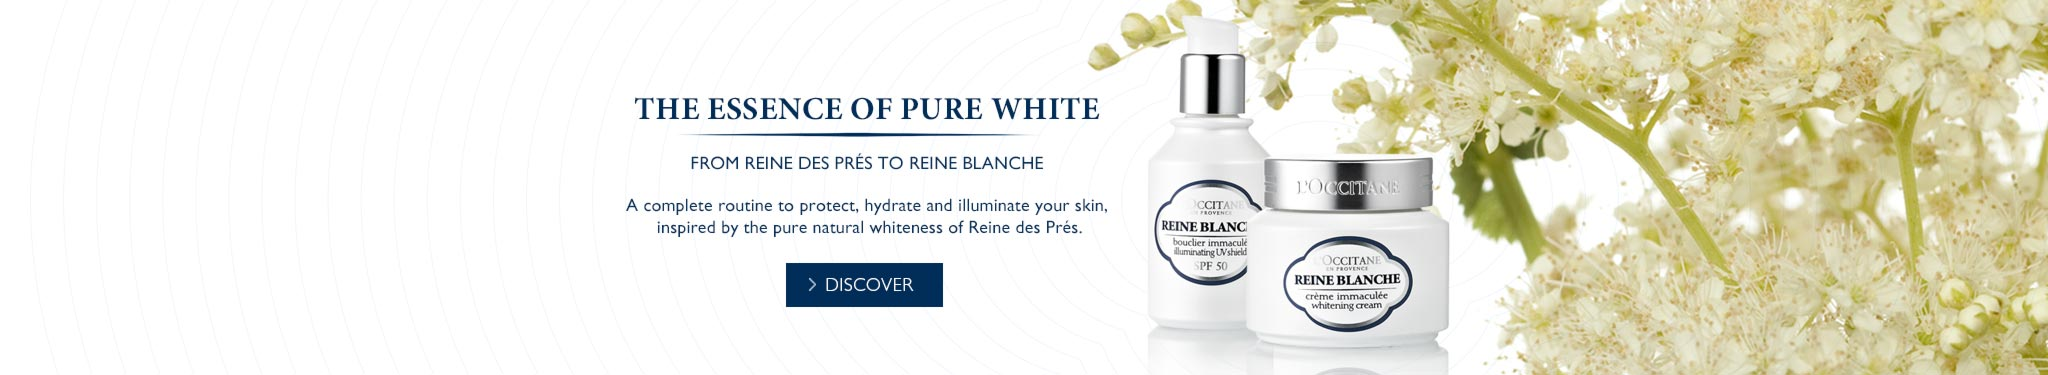 The essence of pure white